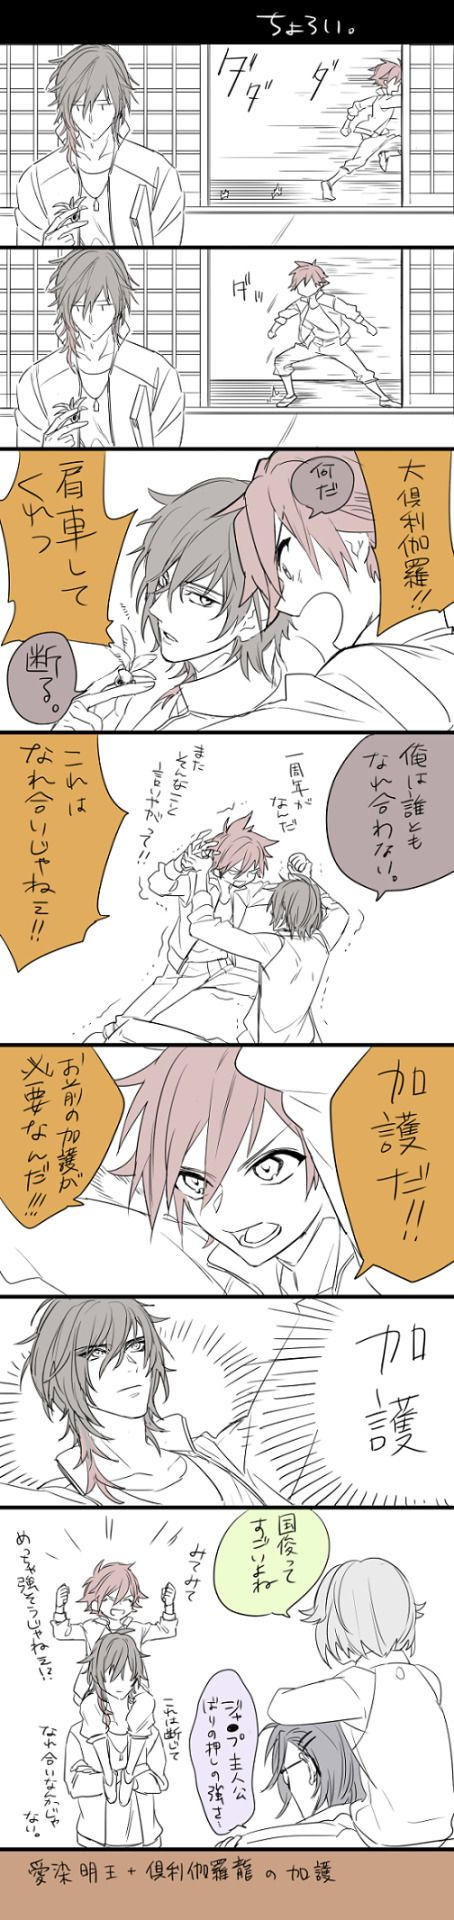 Kuri-chan got sort of bullied by Aizen?